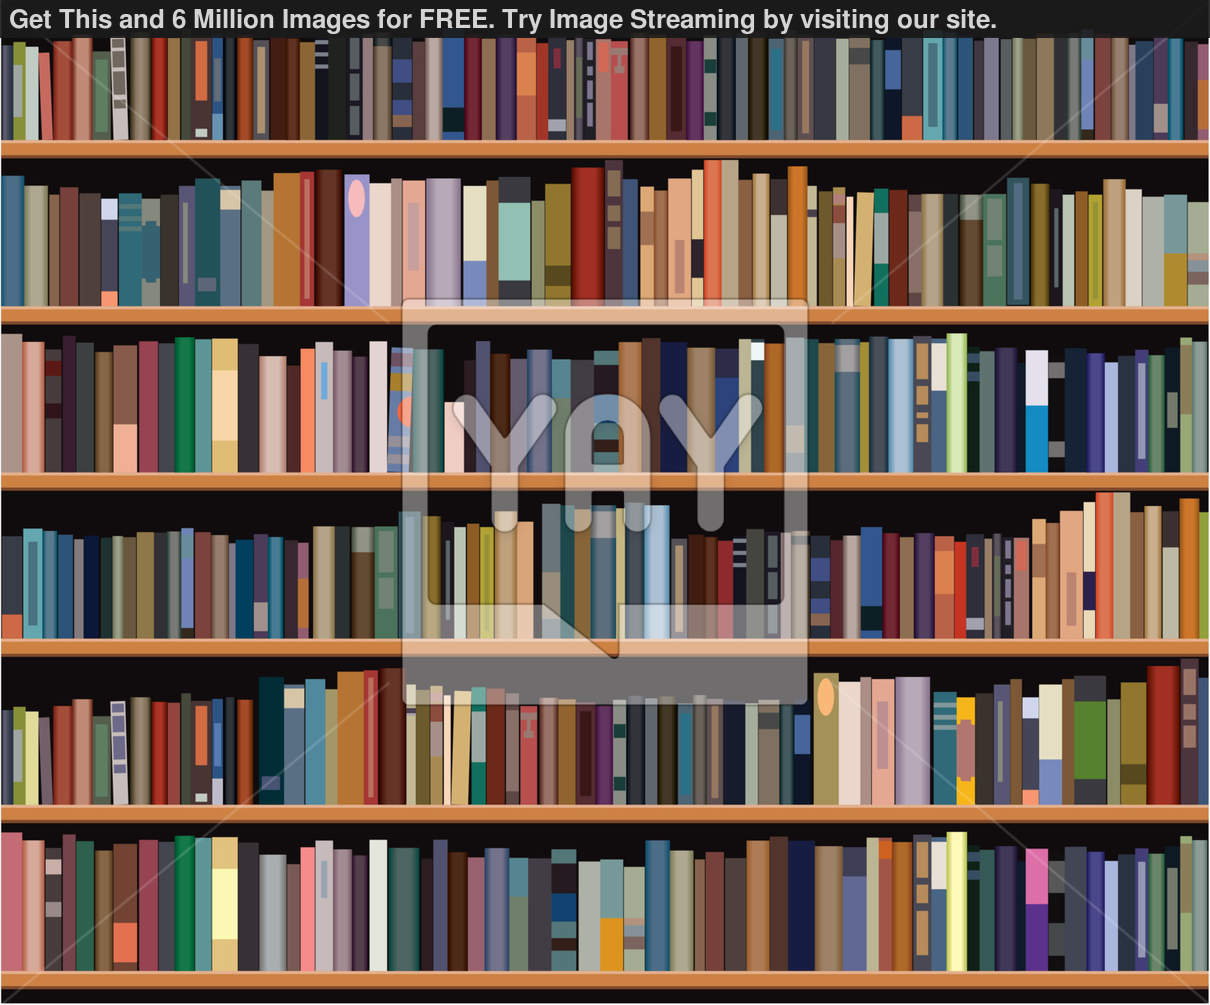 Bookshelf Desktop Wallpaper Save money   get images for 1210x1005